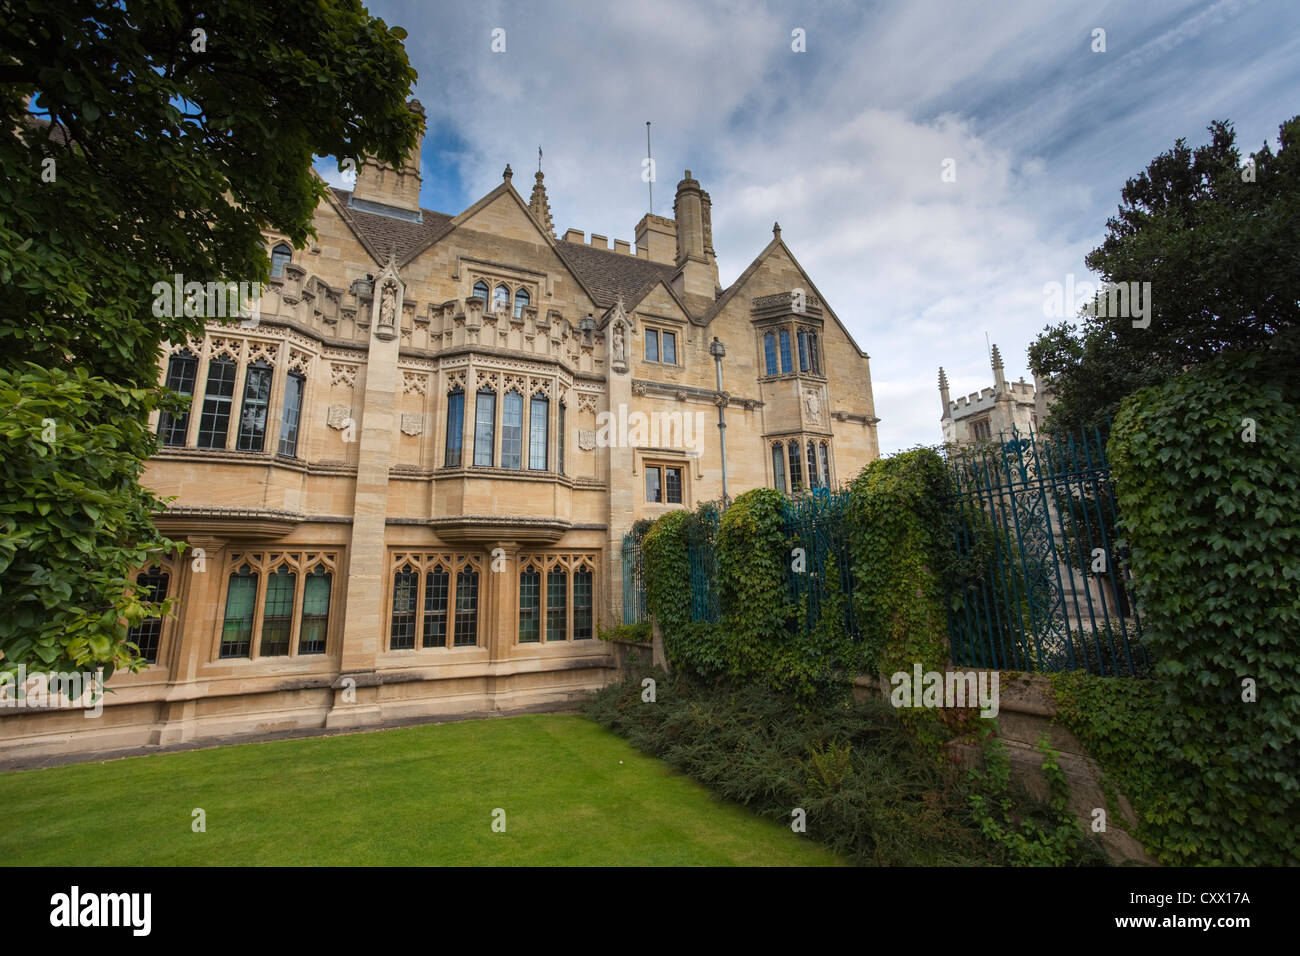 Buildings of Magdalen College, Oxford, UK - Stock Image